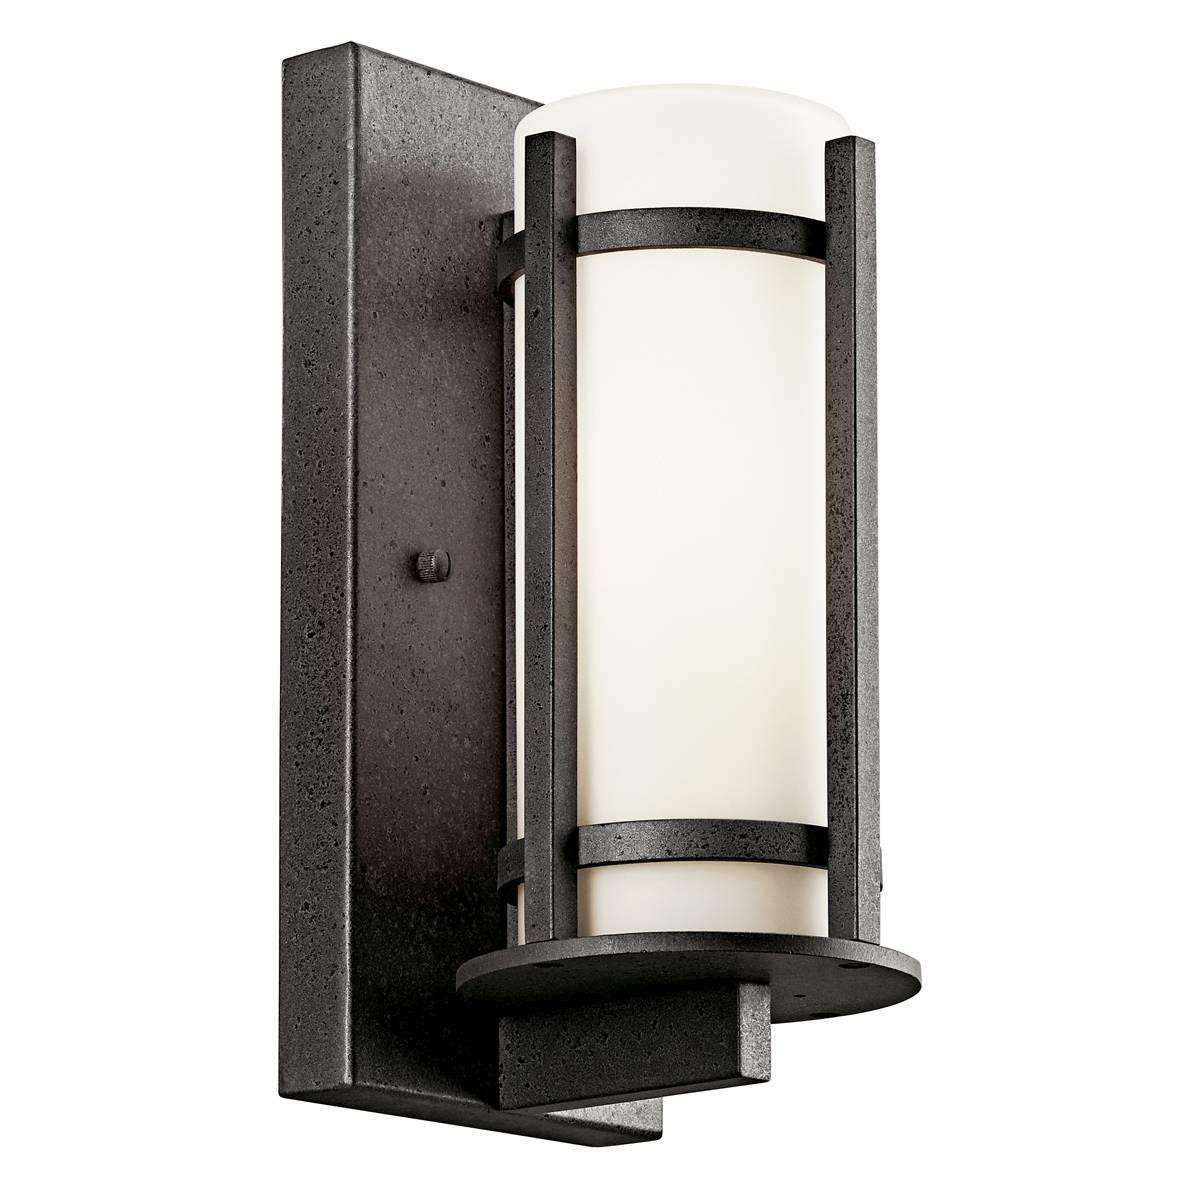 Kichler 49119AVIFL Outdoor Wall 1Lt Fluorescent in Anvil Iron. ENERGY STAR qualified light fixture